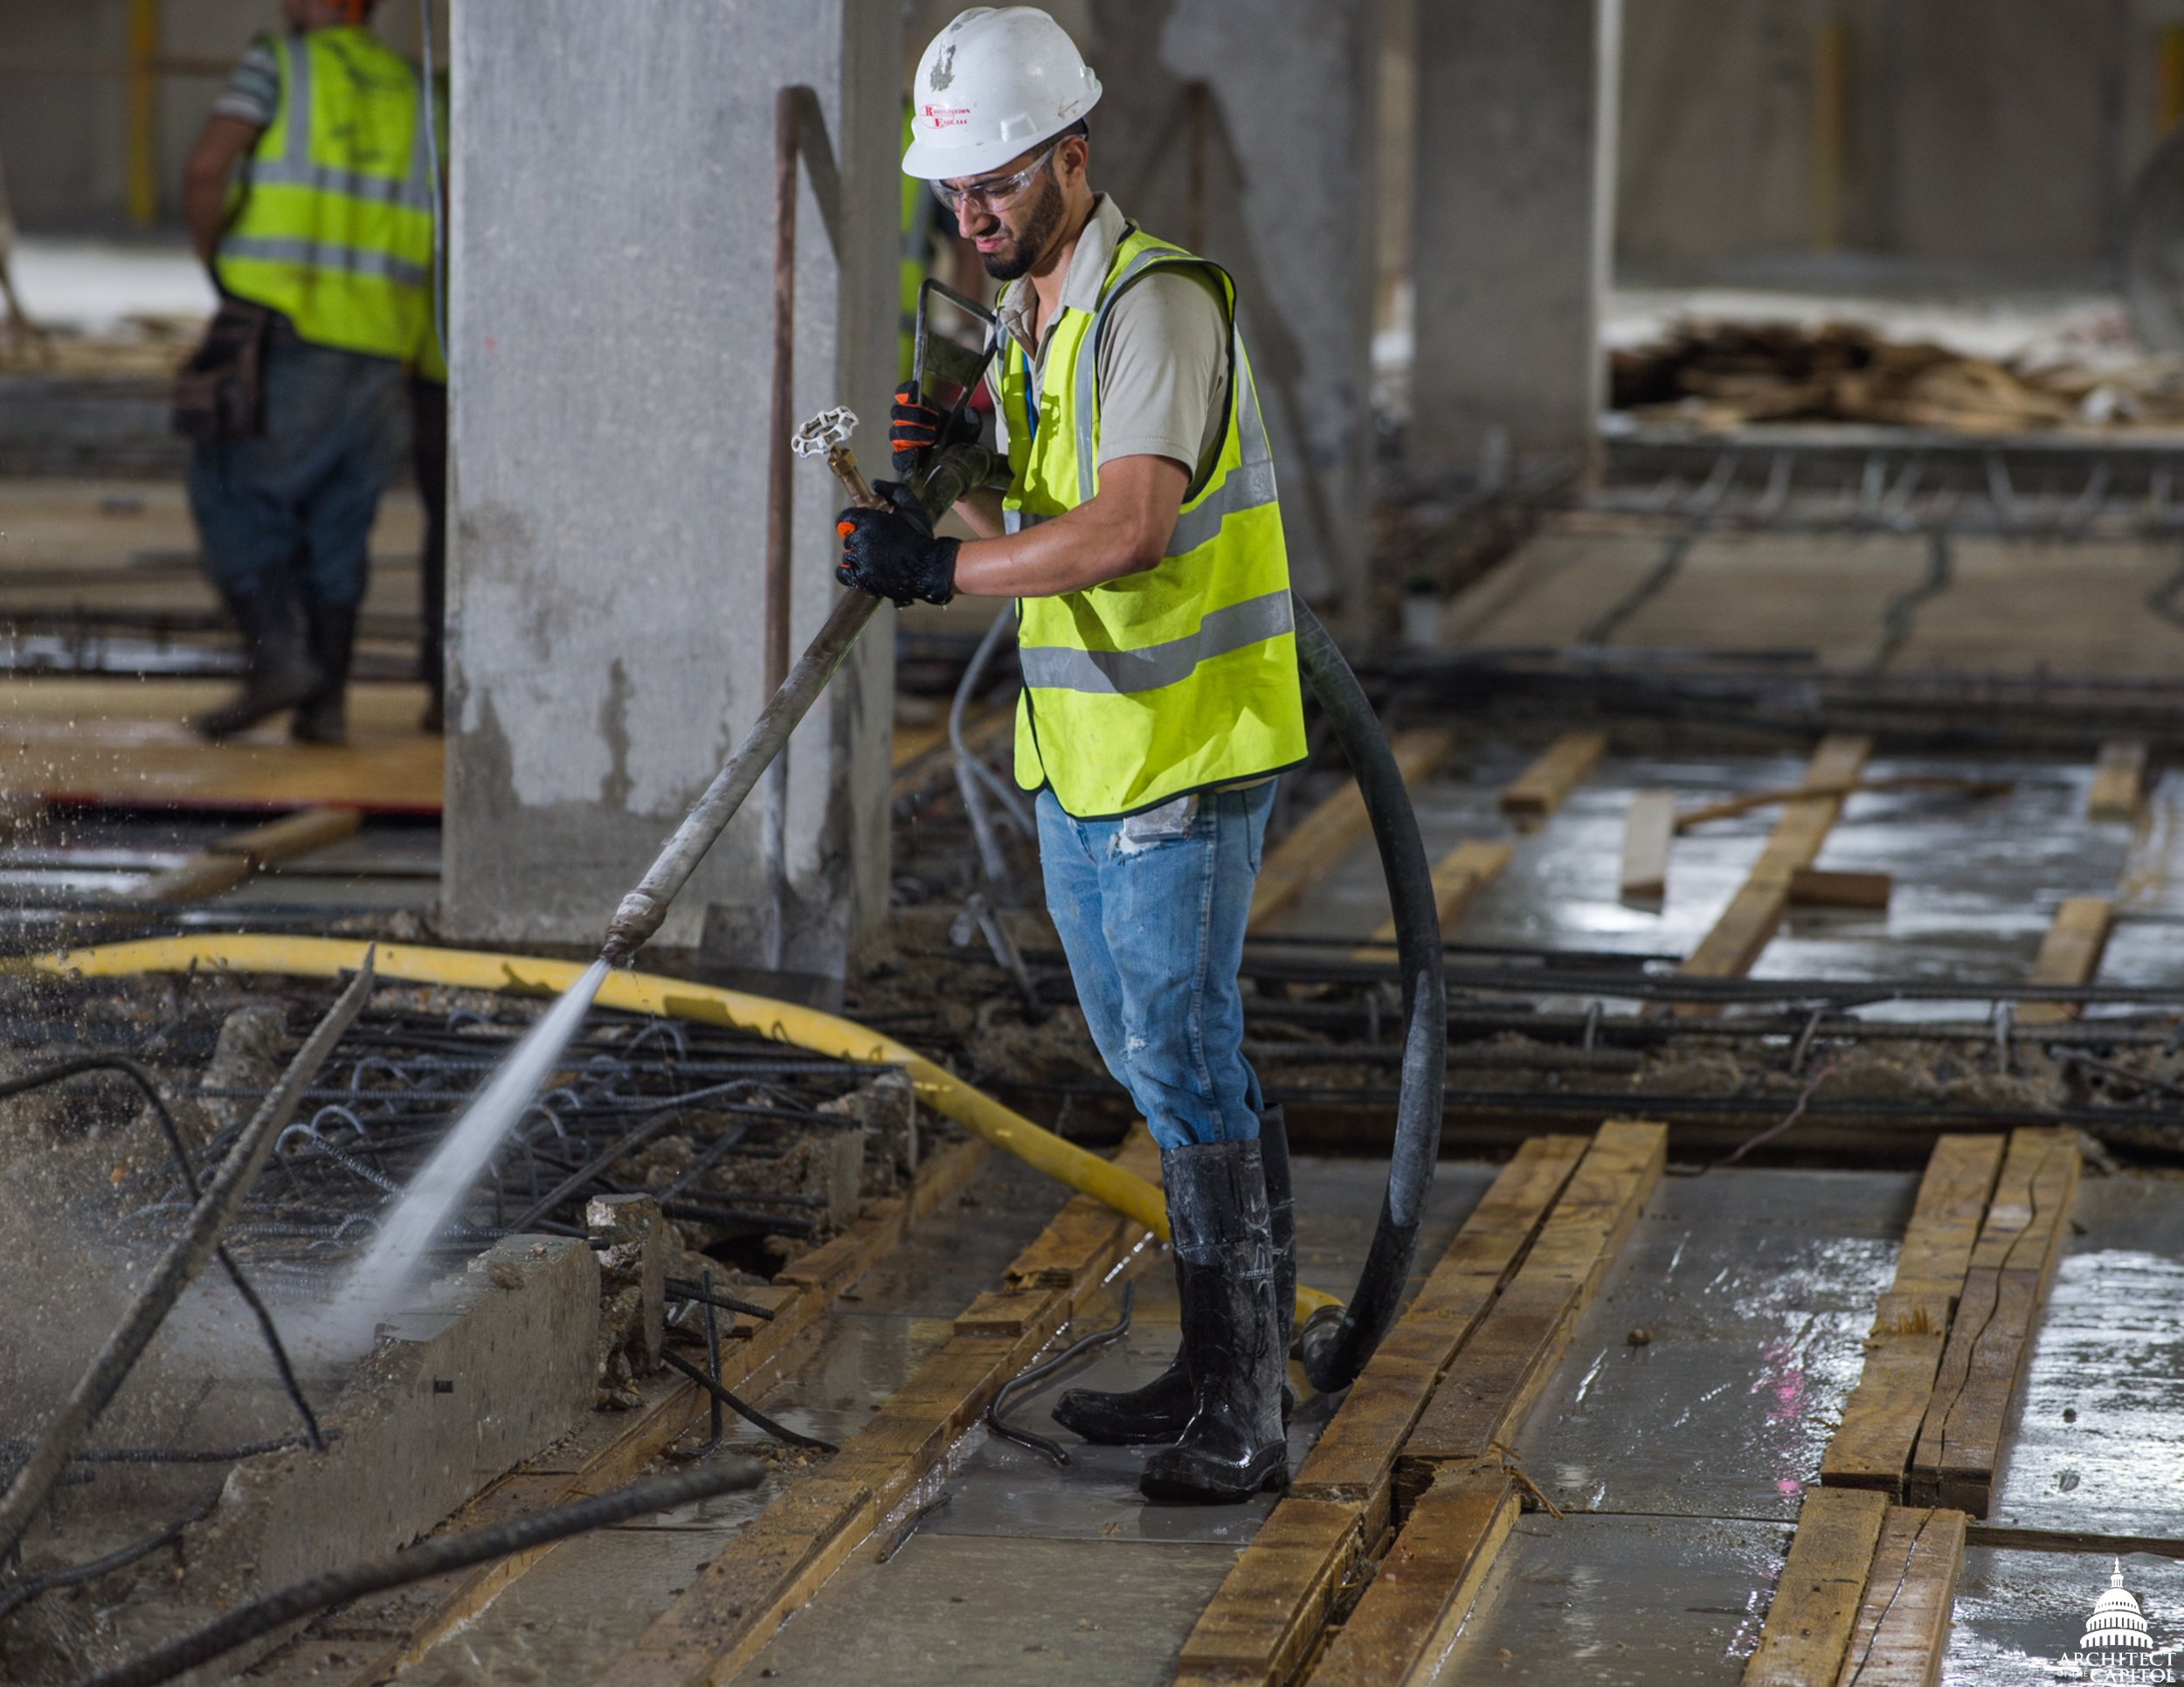 A construction worker in the Rayburn Garage uses high pressure water to clean off the beam and rebar to prep them for the new concrete slab and beam encasement.